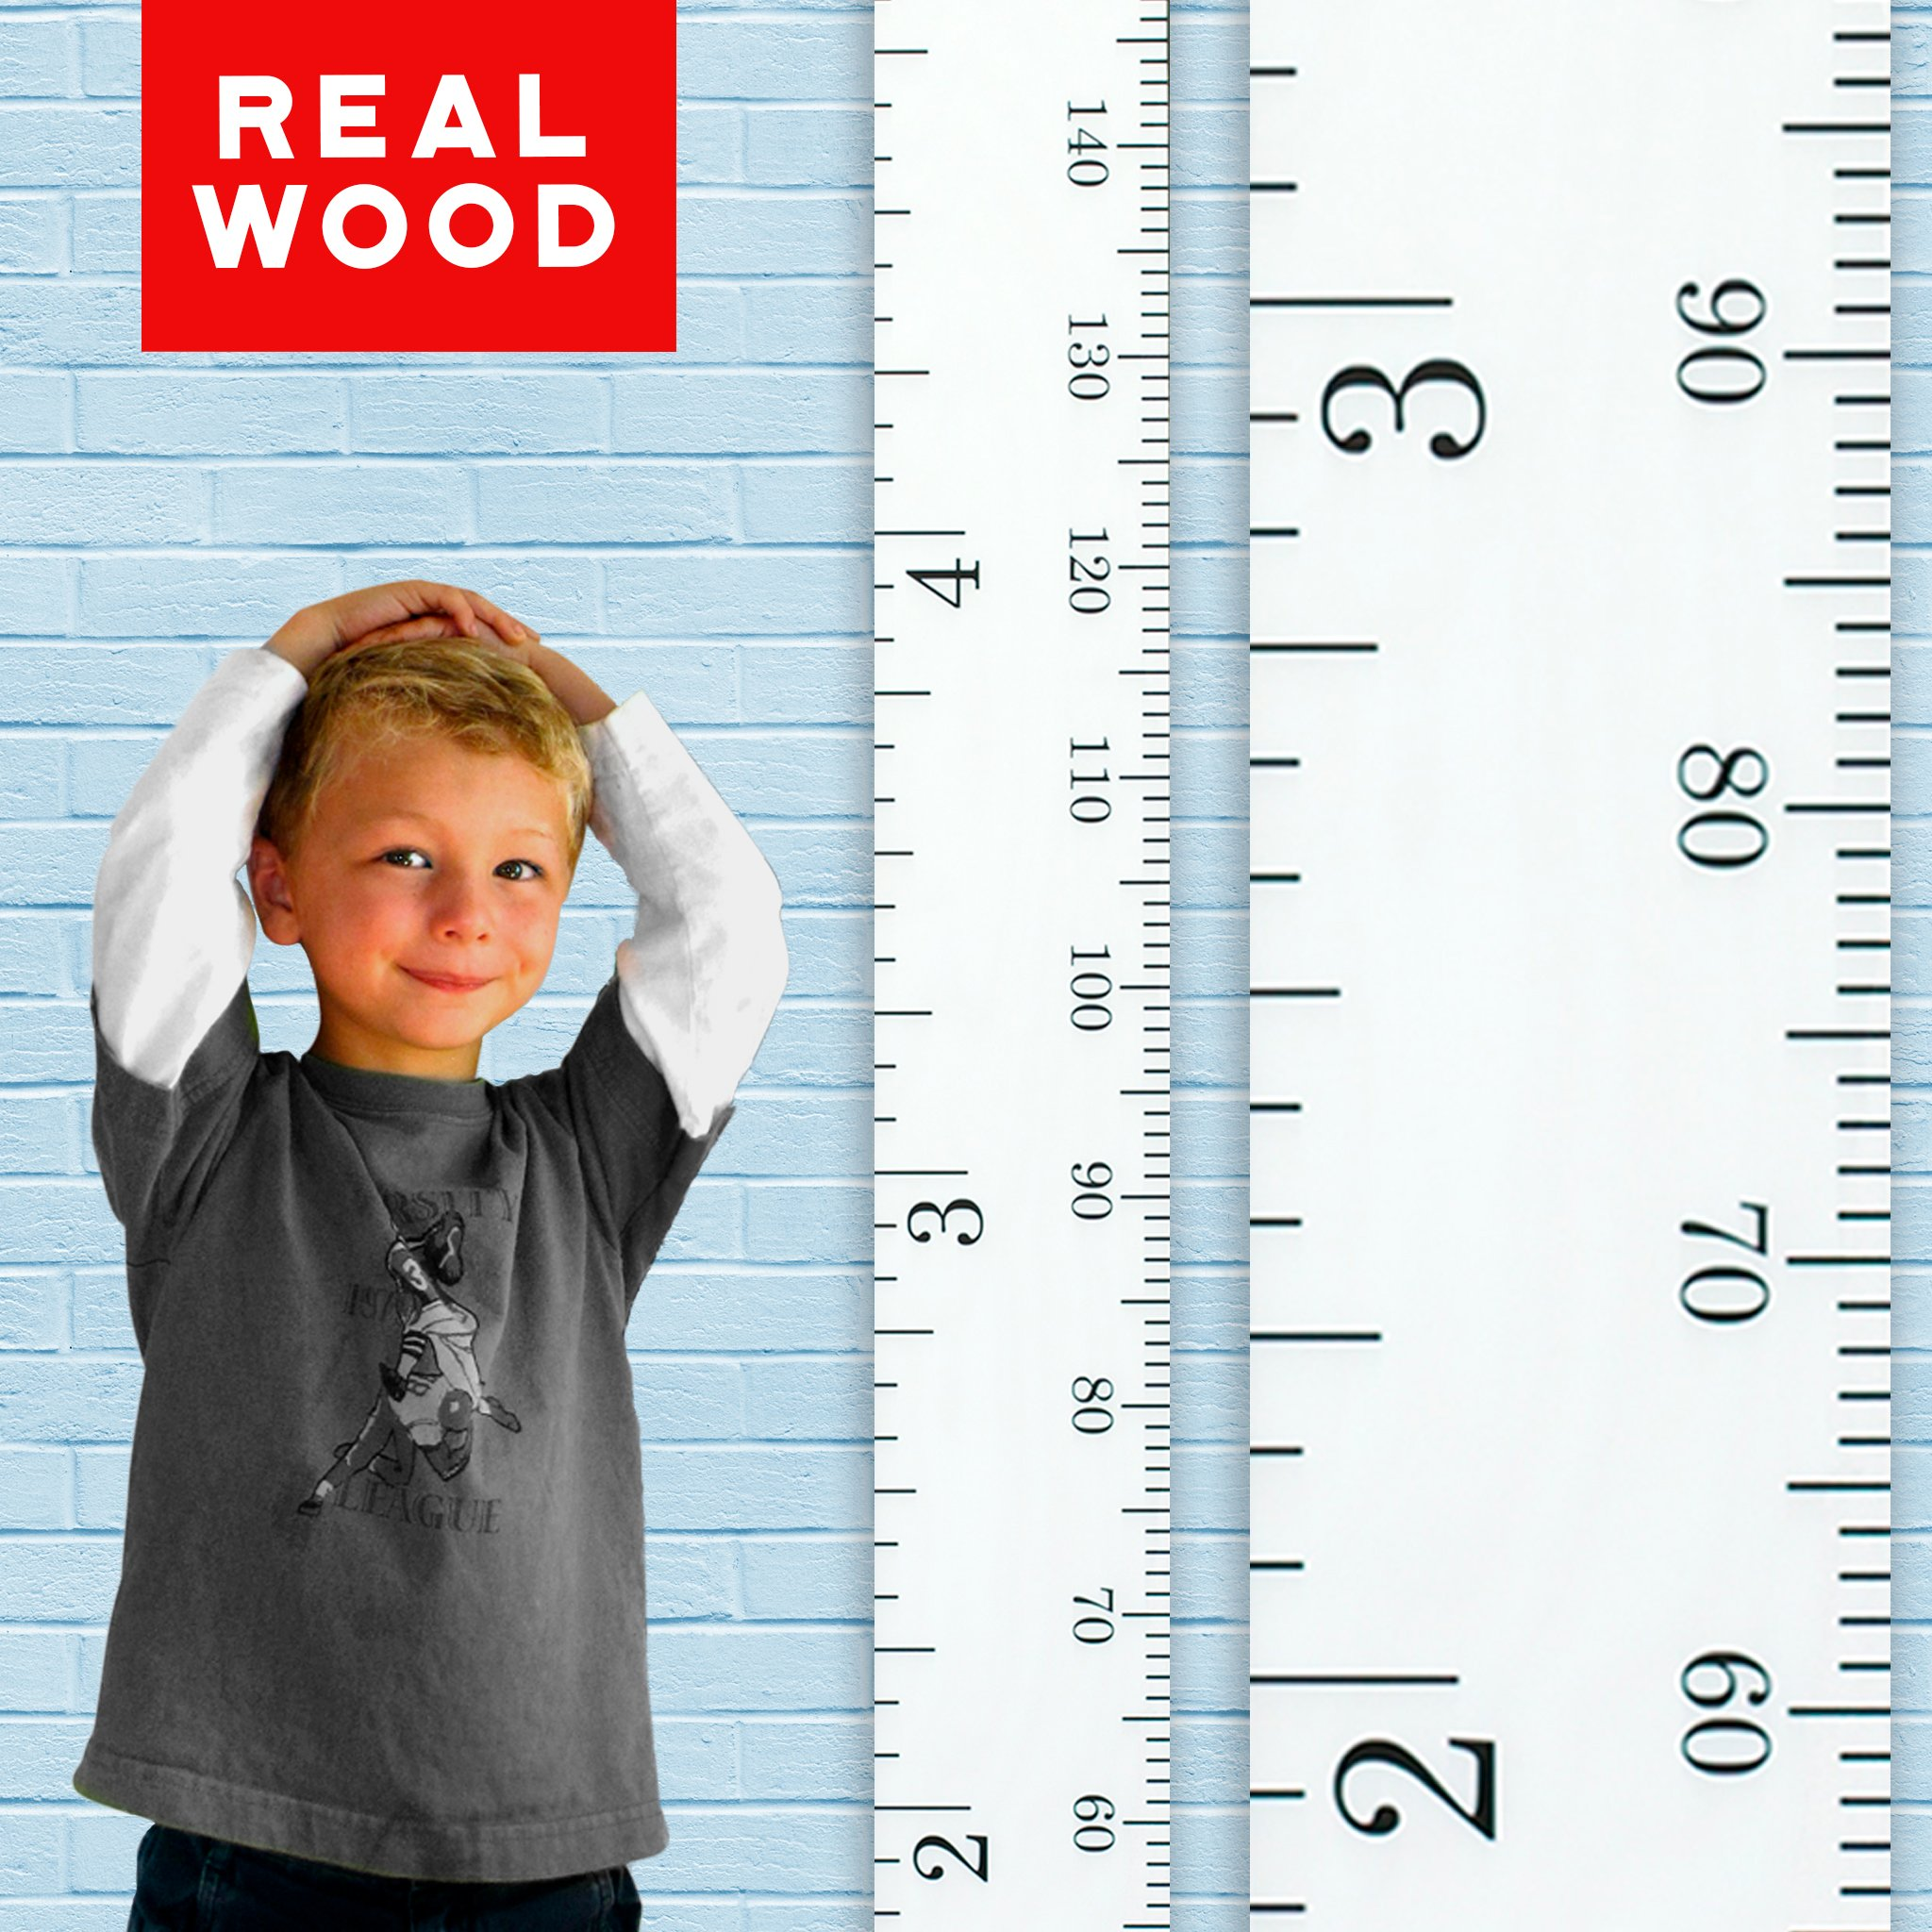 Growth Chart Art   Wooden Height Chart for Kids, Boys and Girls   Durable, Portable and Beautiful Height Measurement   White Classic Schoolhouse Ruler with Black Numerals Inches/Centimeters